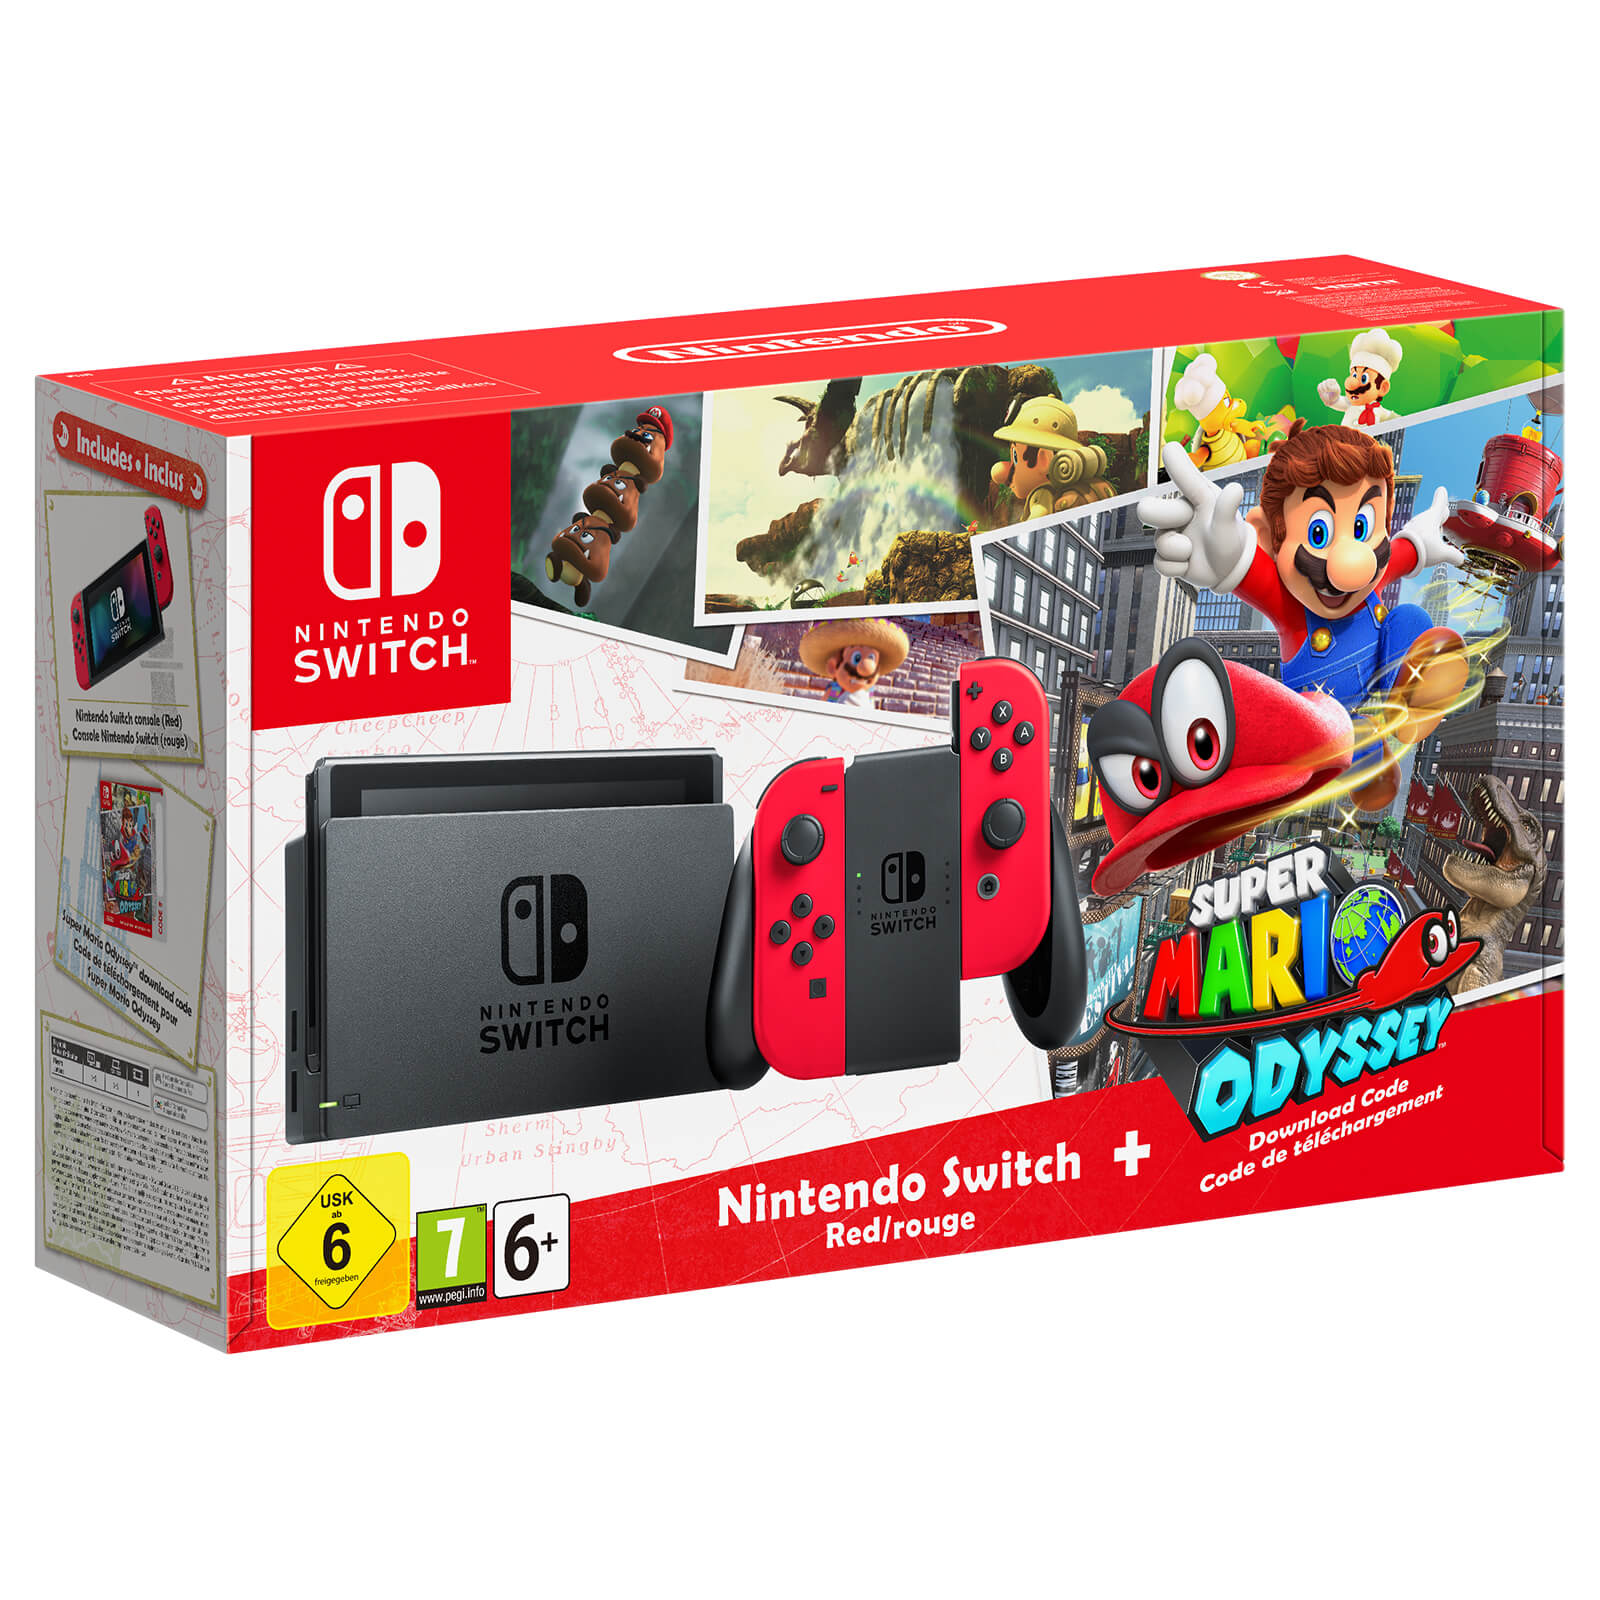 Nintendo Switch Red Joy-Con Limited Super Mario Odyssey Edition